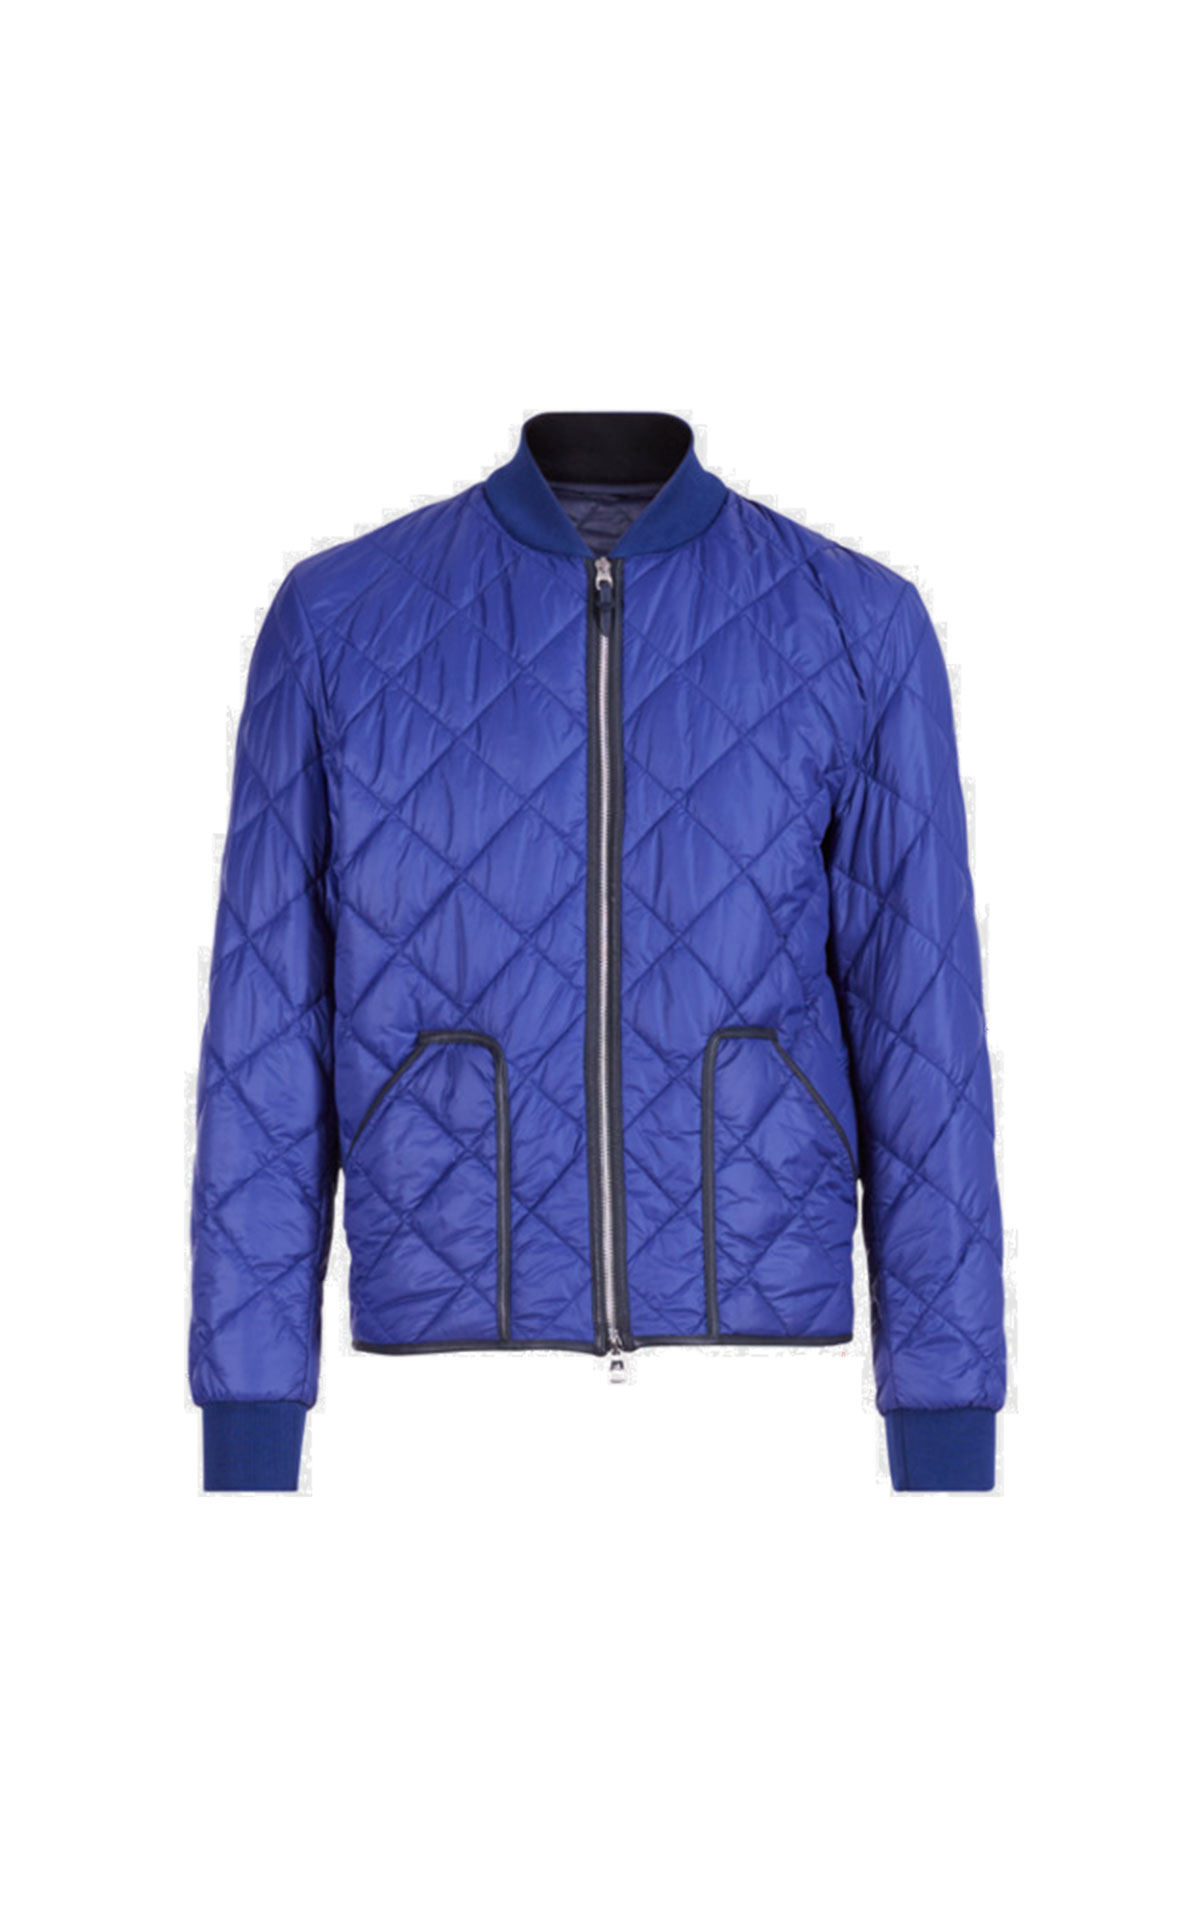 dunhill Quilted bomber in royal blue from Bicester Village